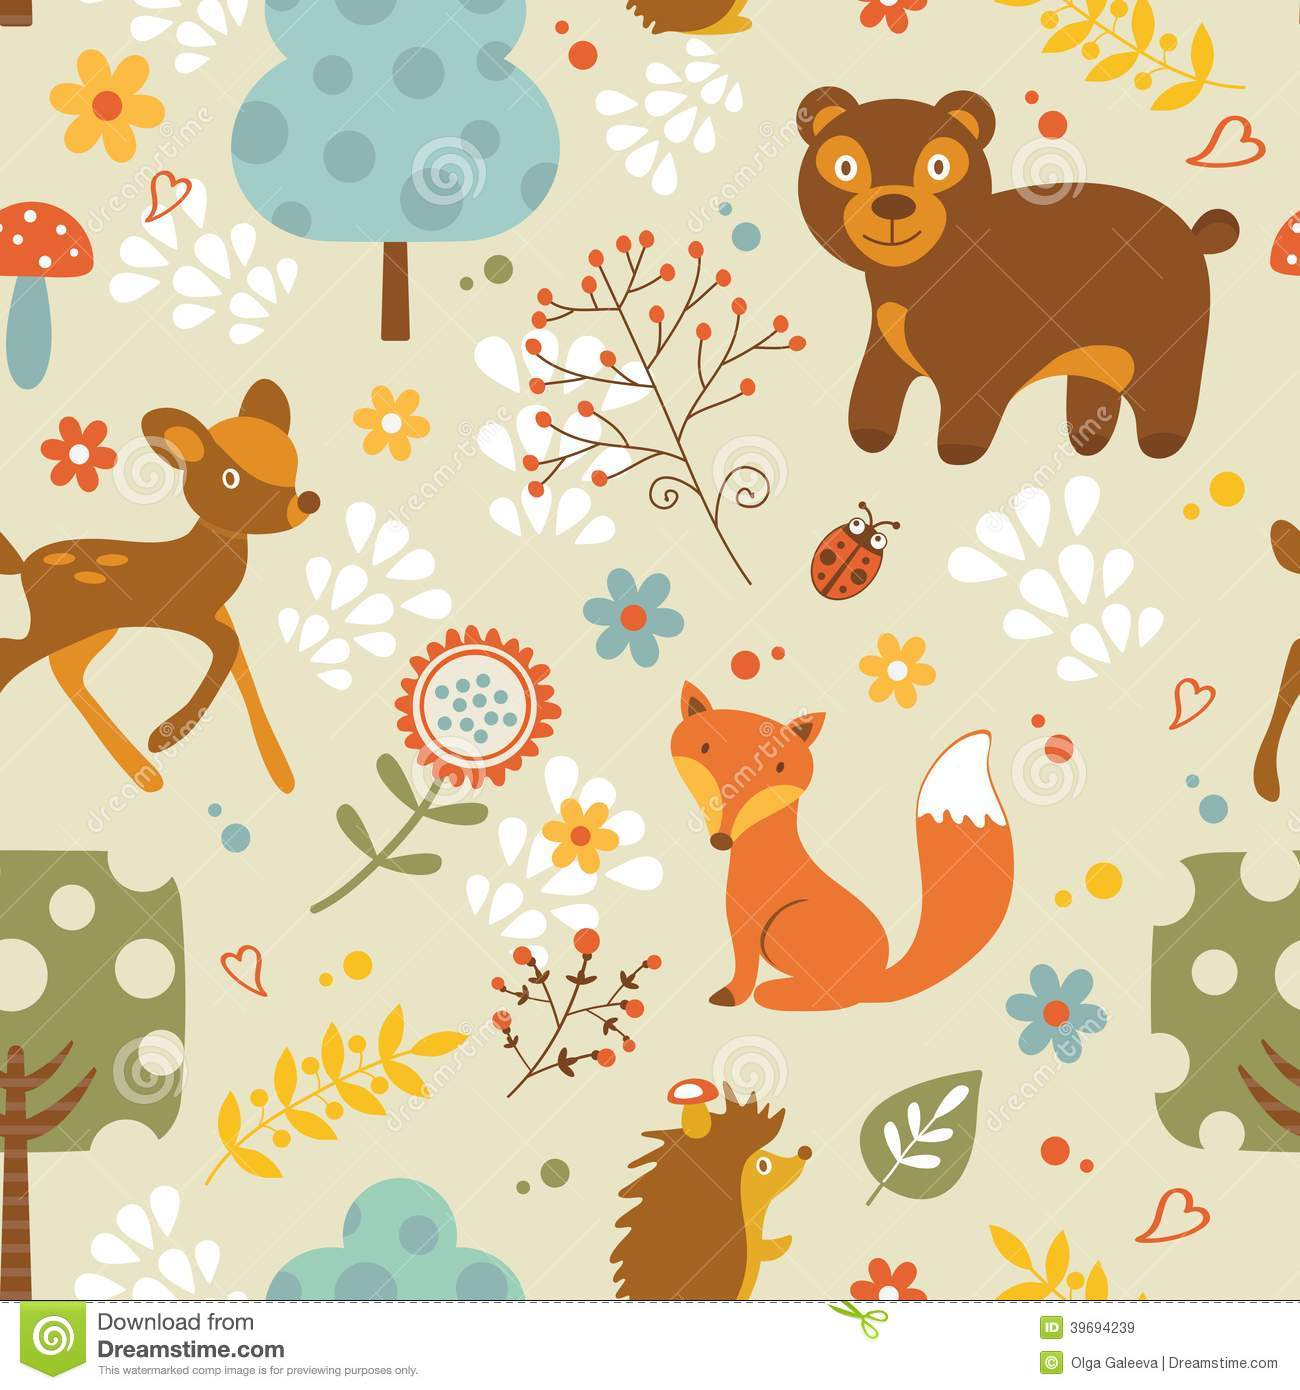 Colorful woodland animals seamless pattern.